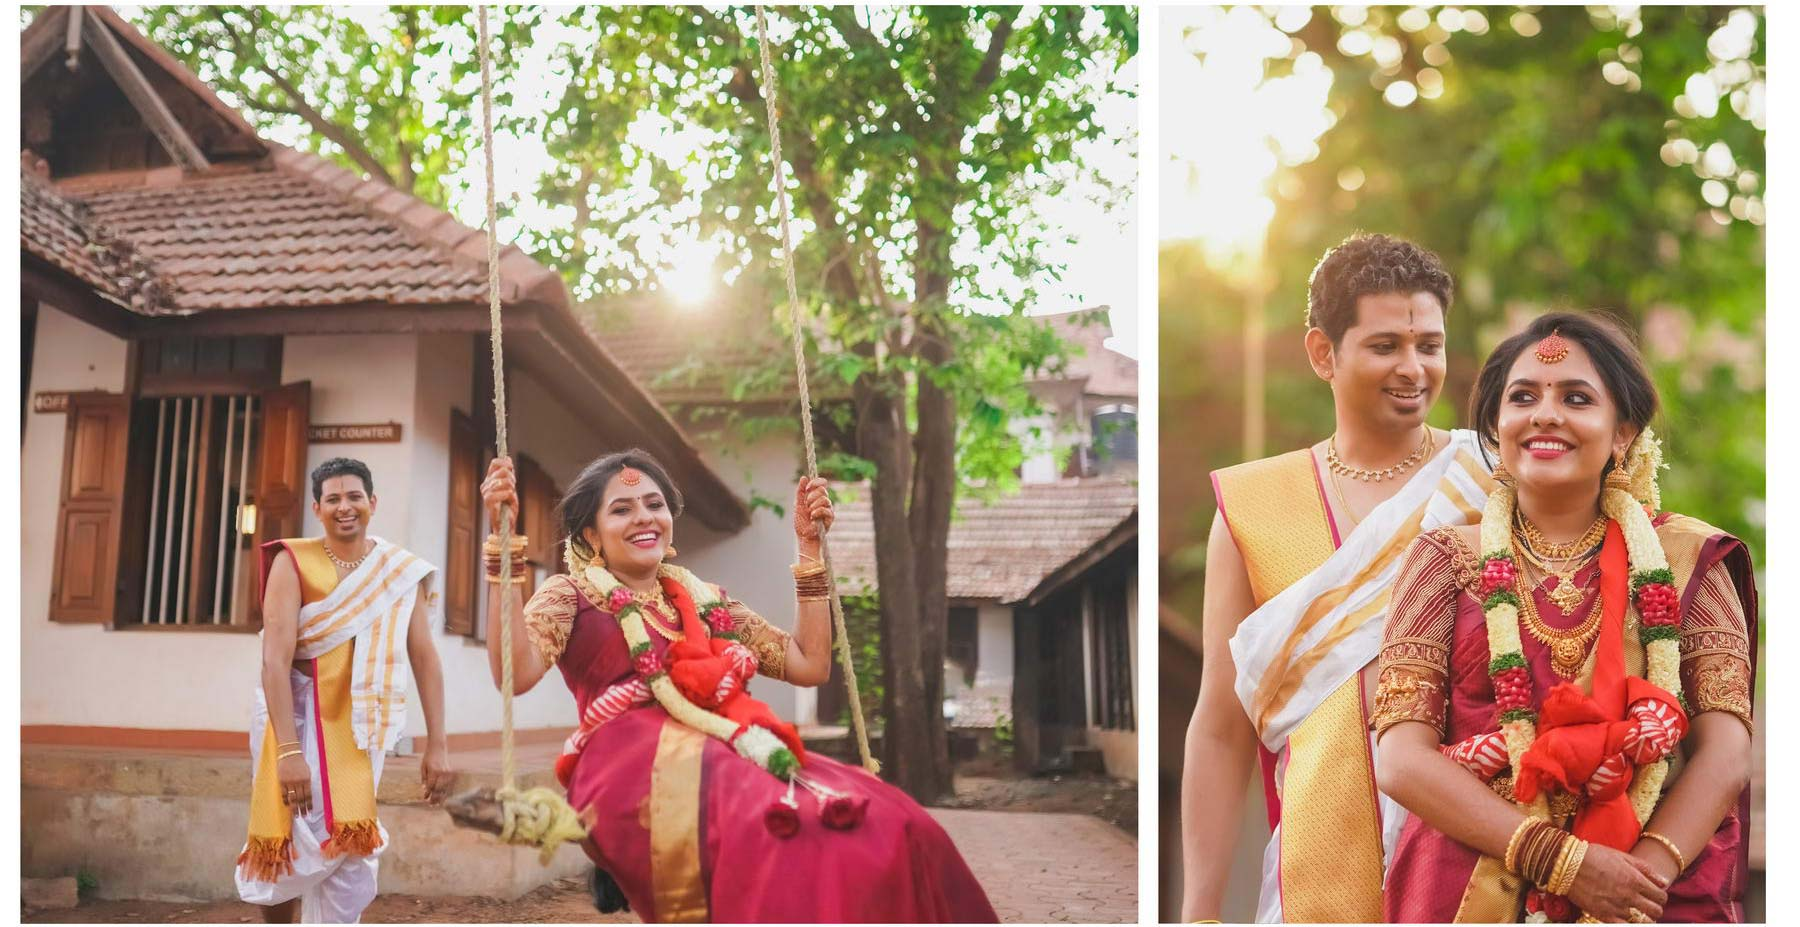 Hire a candid wedding photographer for your wedding in India